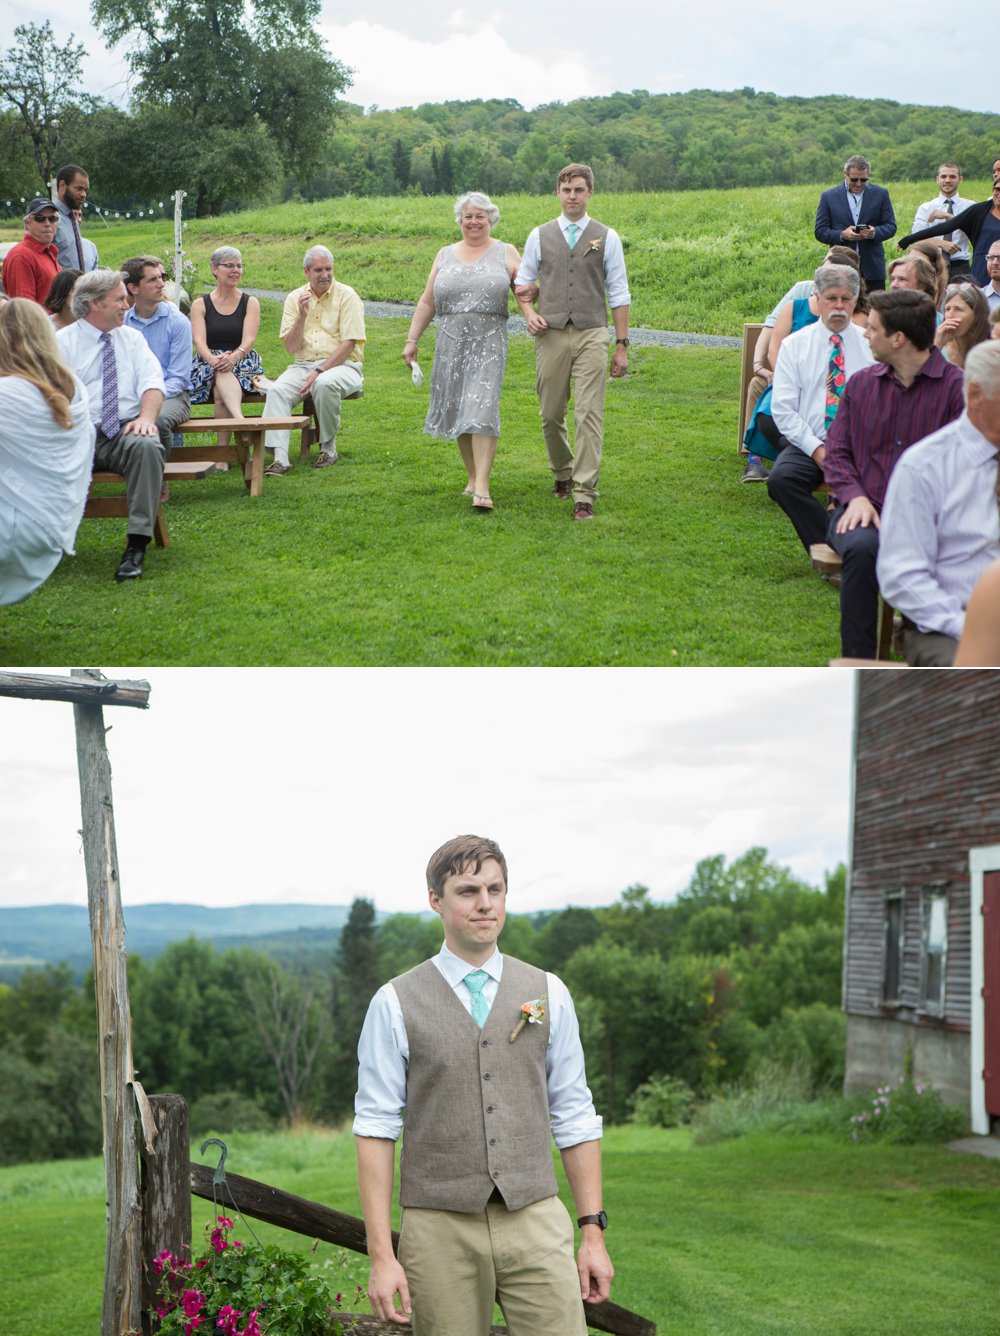 SomerbyJonesPhotography_VermontWedding_CyrBarn_CryBarnWedding_0025.jpg